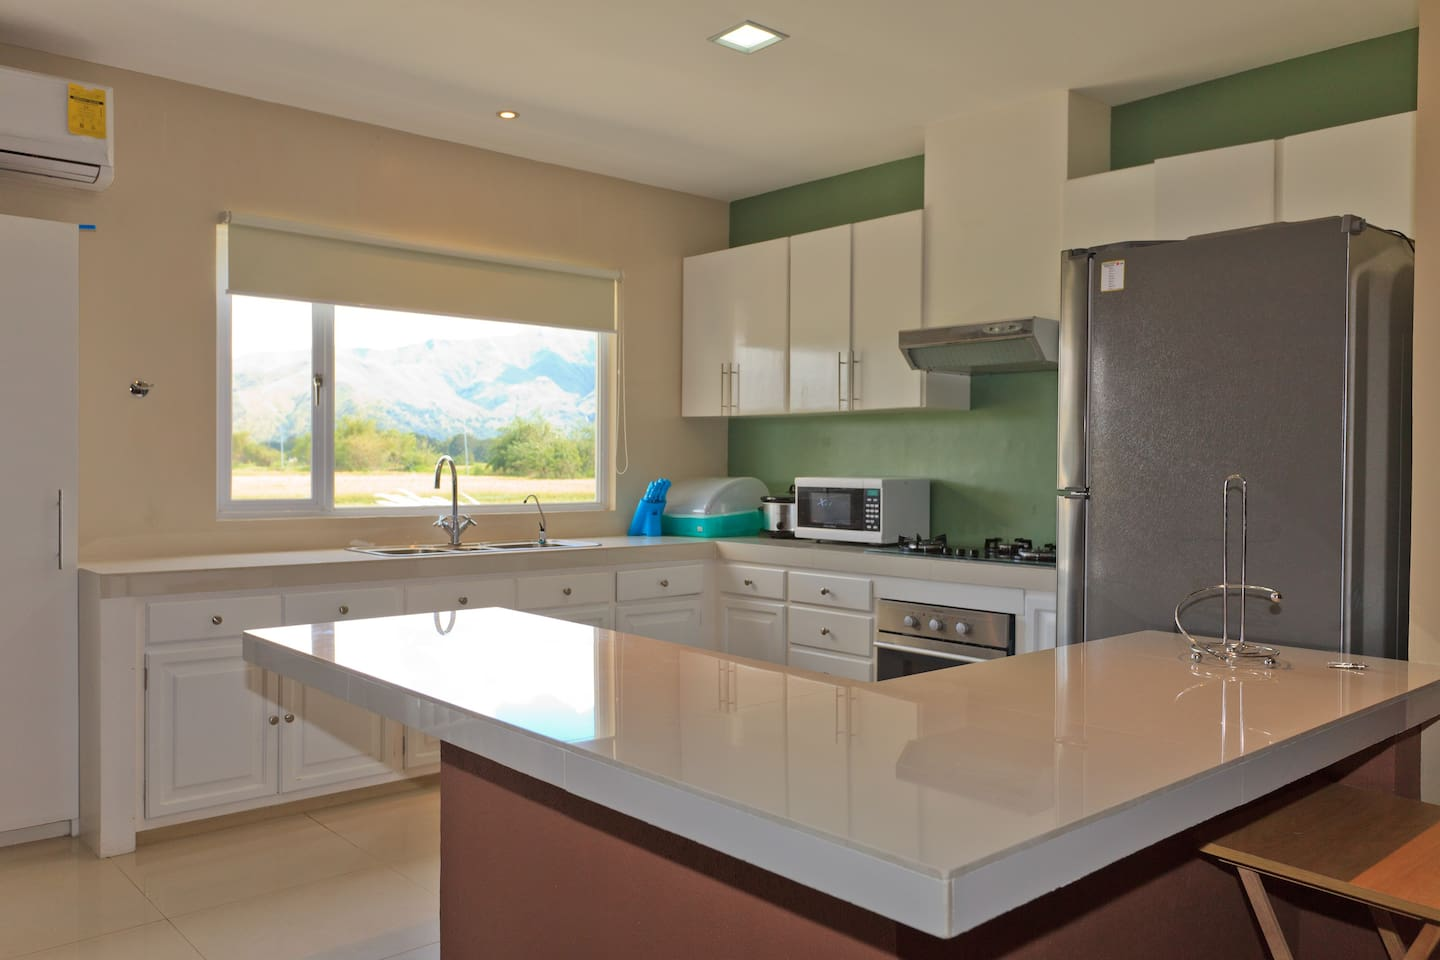 Crib for sale in olongapo - Vacation Home In The Philippines Houses For Rent In San Antonio Central Luzon Philippines